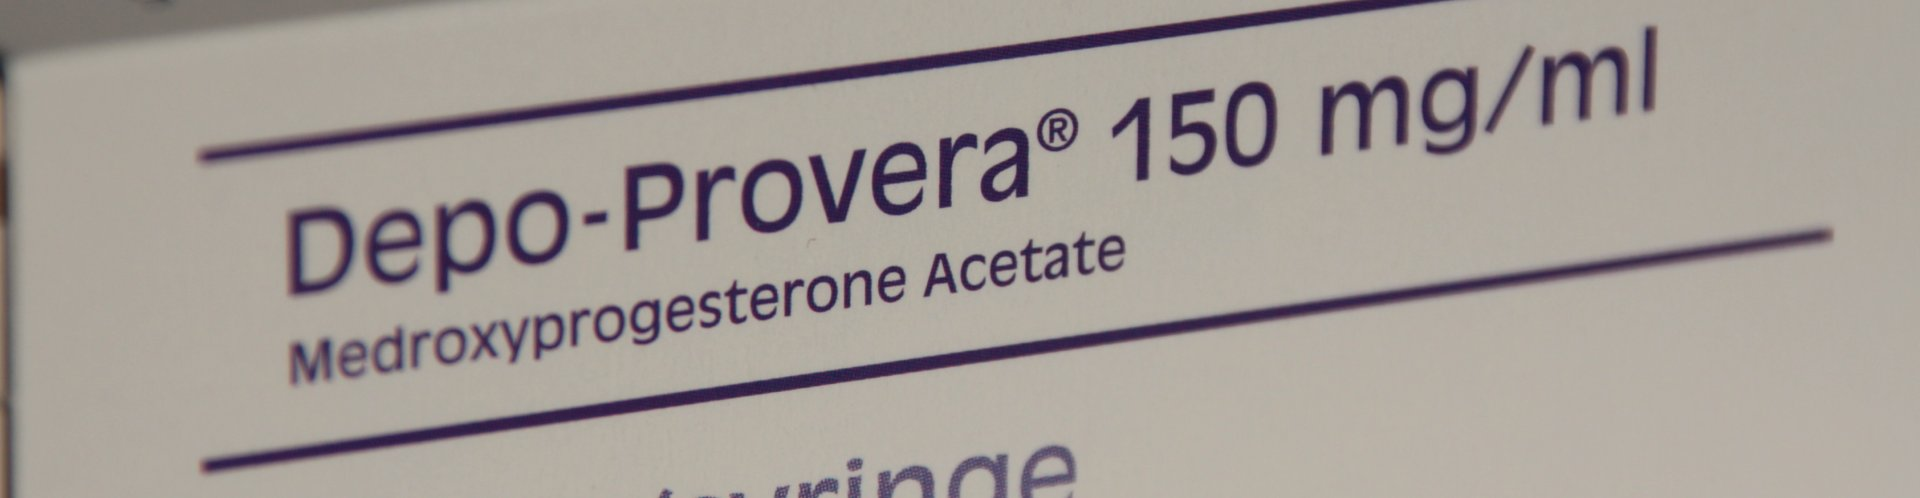 Depo Provera In Mental Health